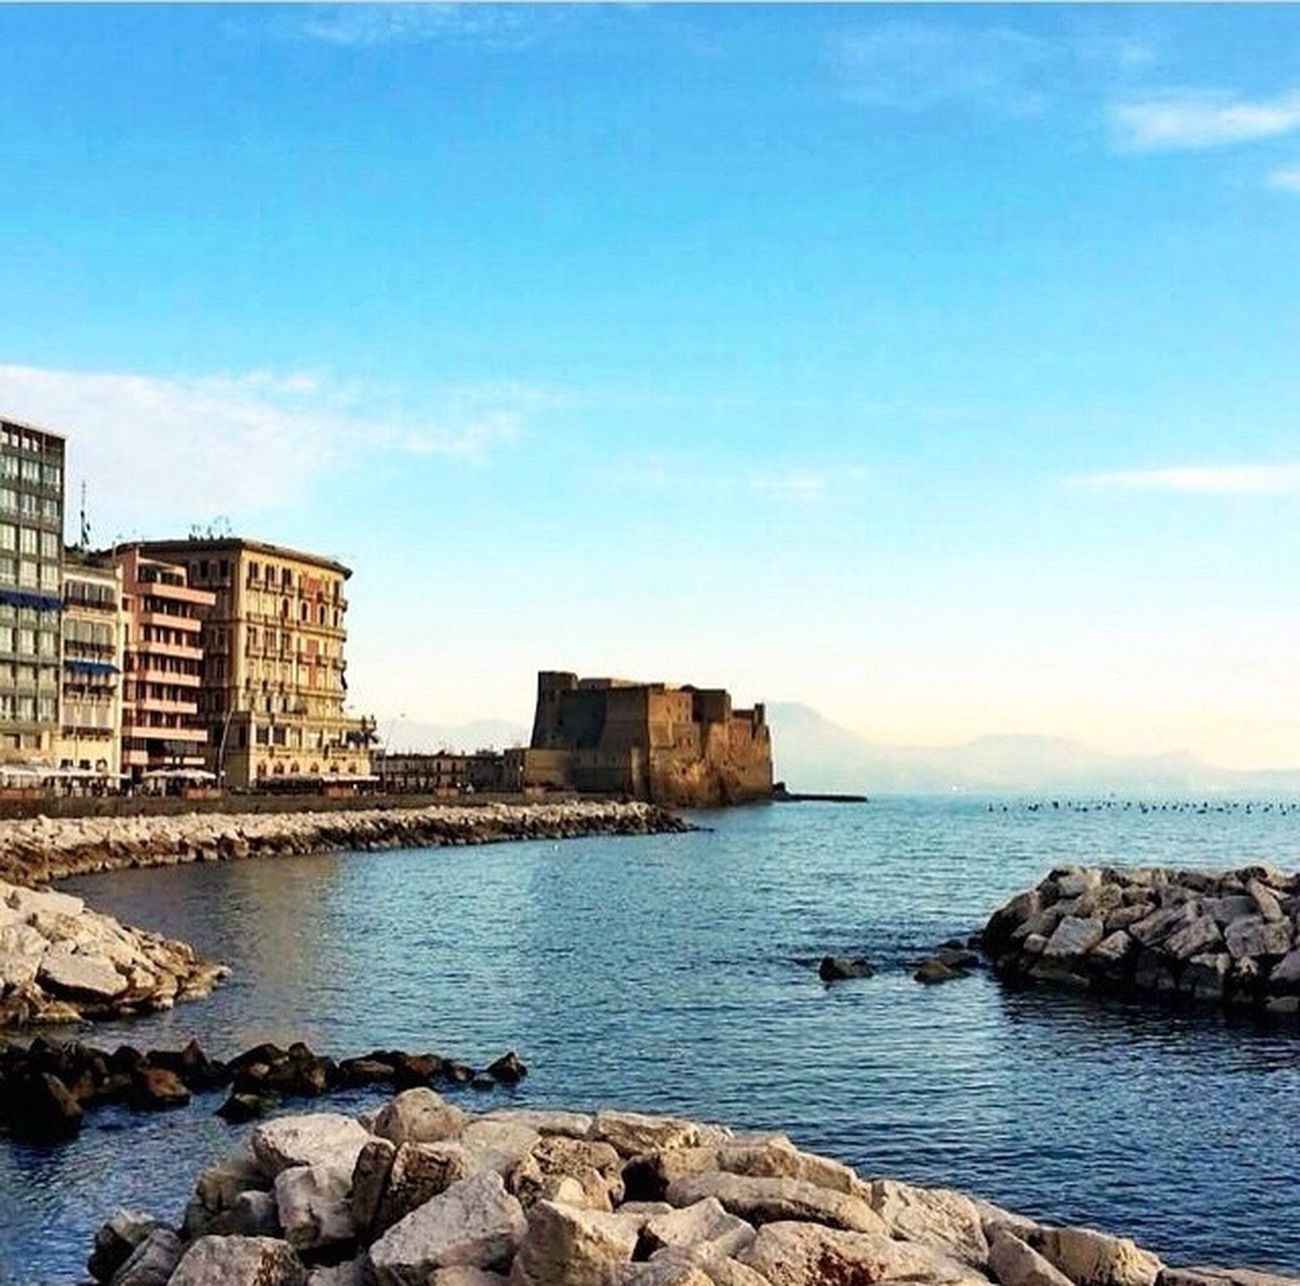 Napoli Mare Sea Castle Italy Mergellina Naples なポリ 海 卵城